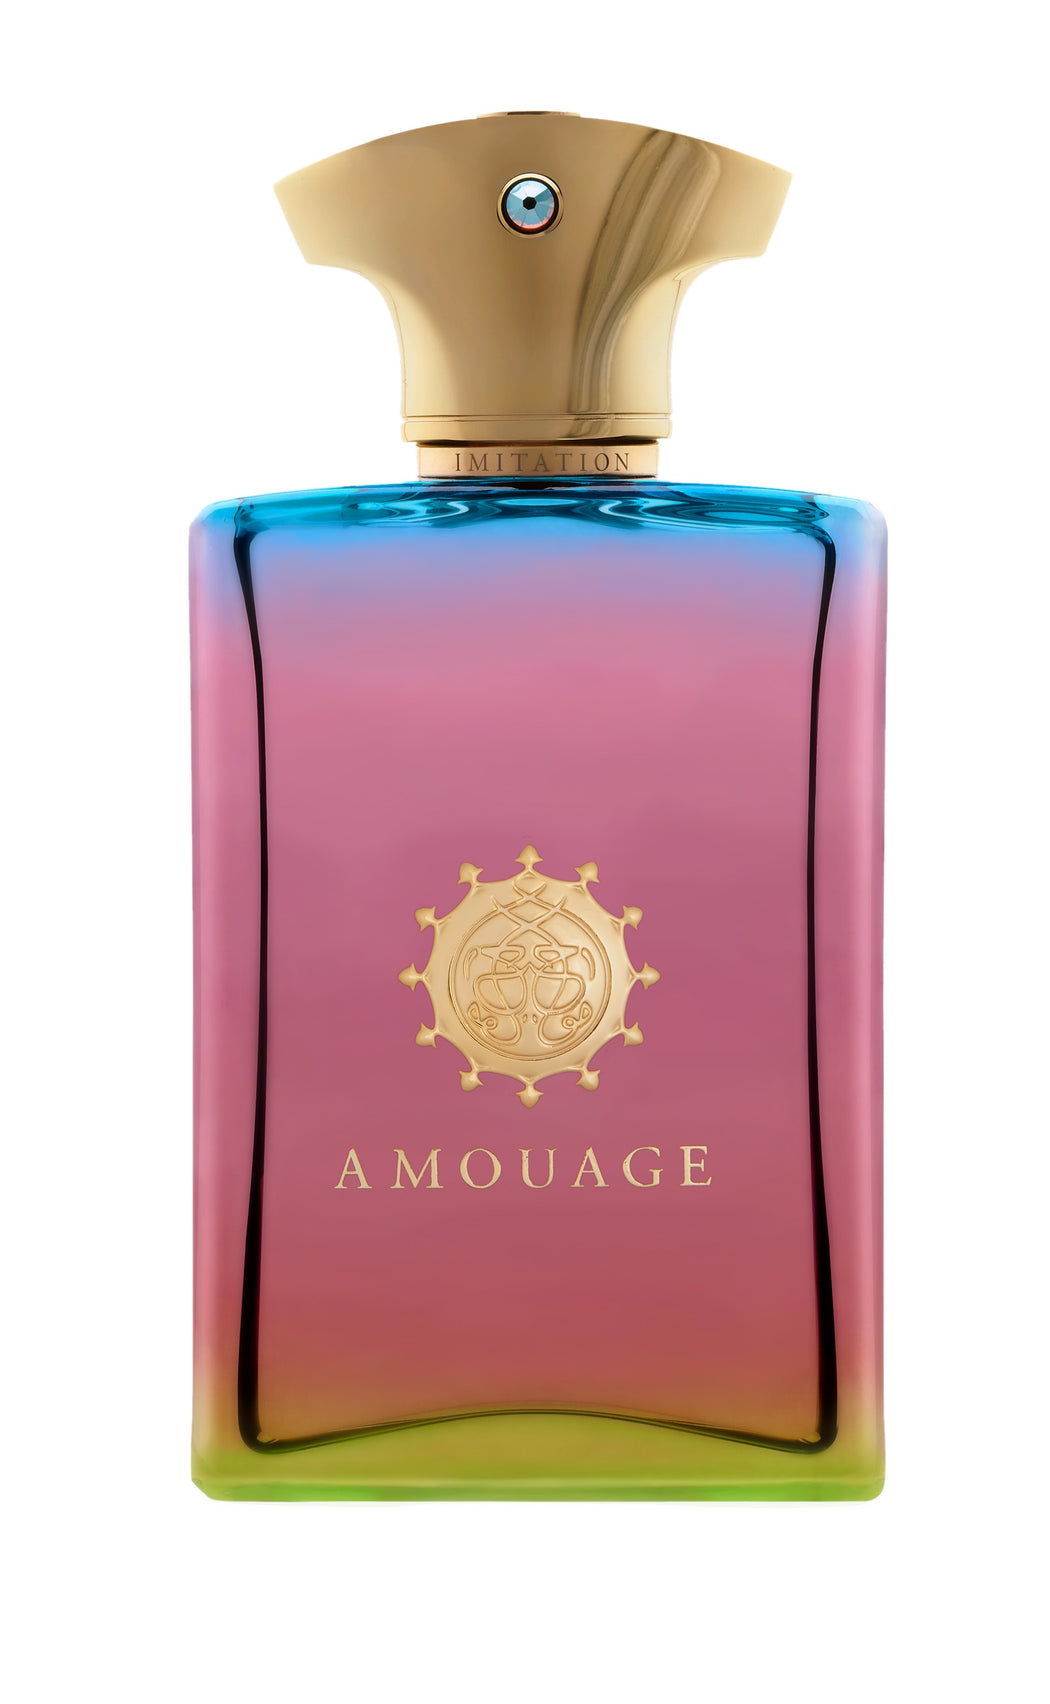 AMOUAGE Imitation Man 100ml